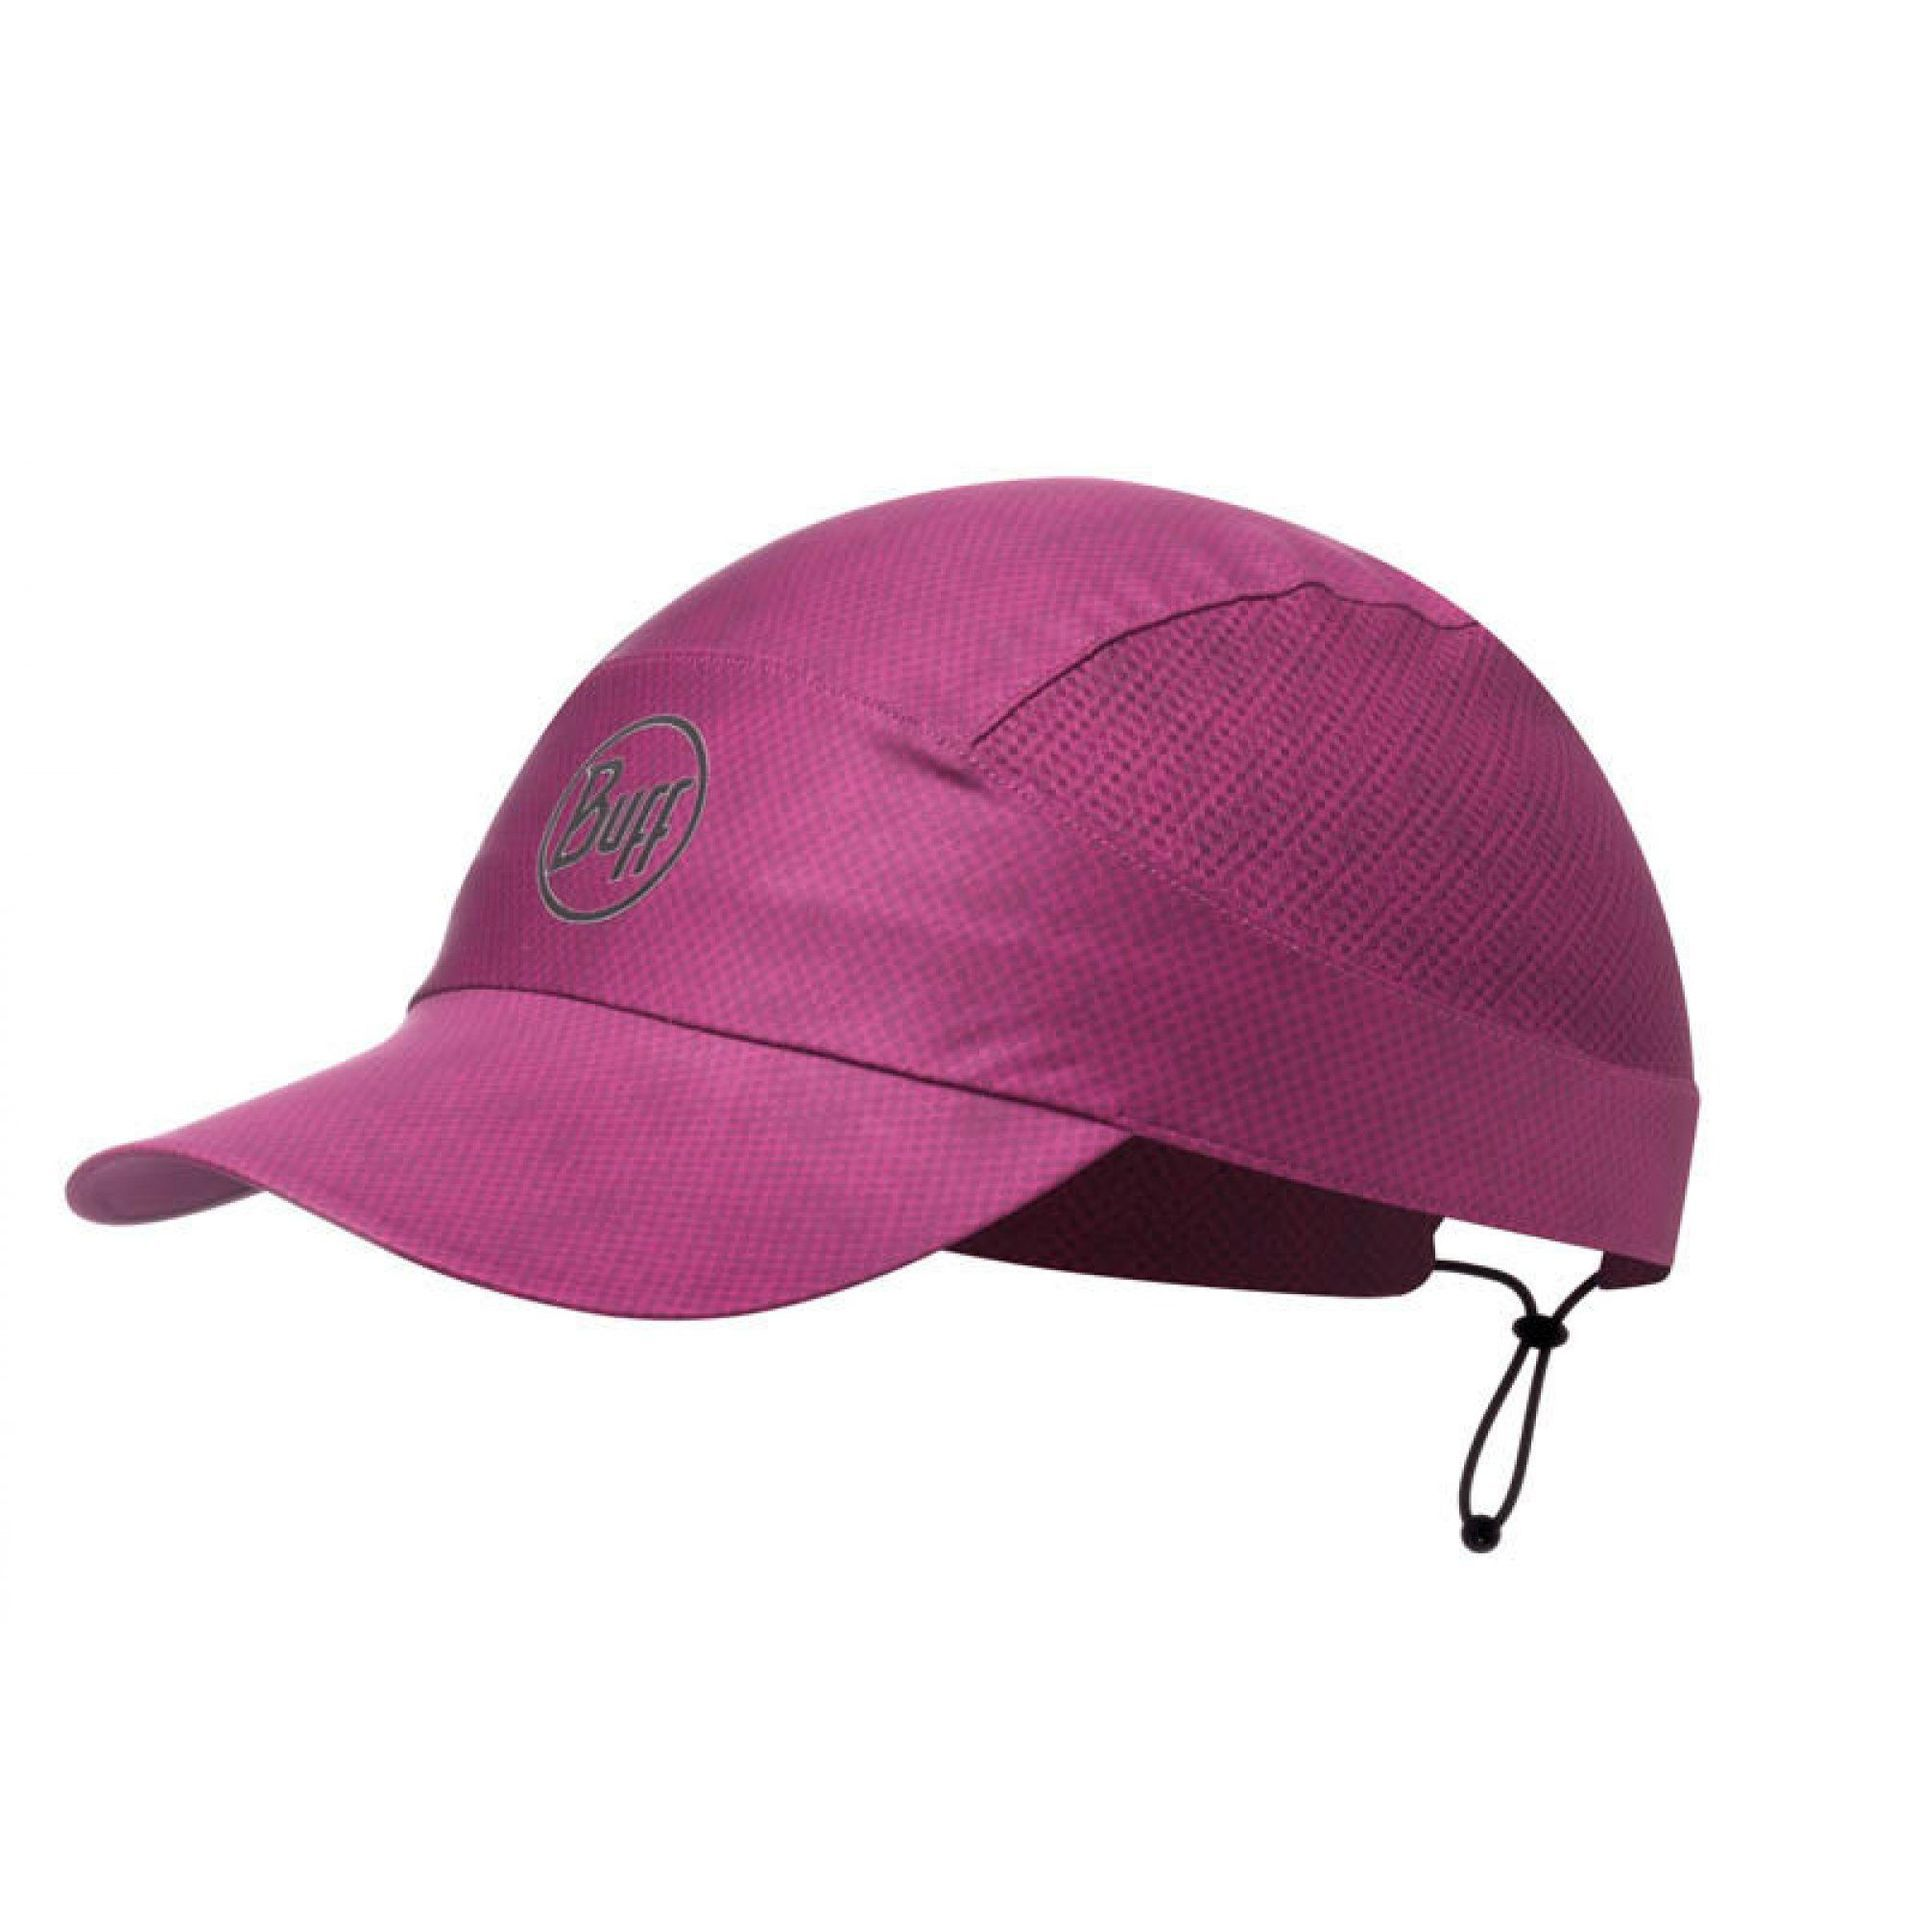 CZAPKA Z DASZKIEM BUFF PACK RUN CAP R-BELKA BOYSENBERRY